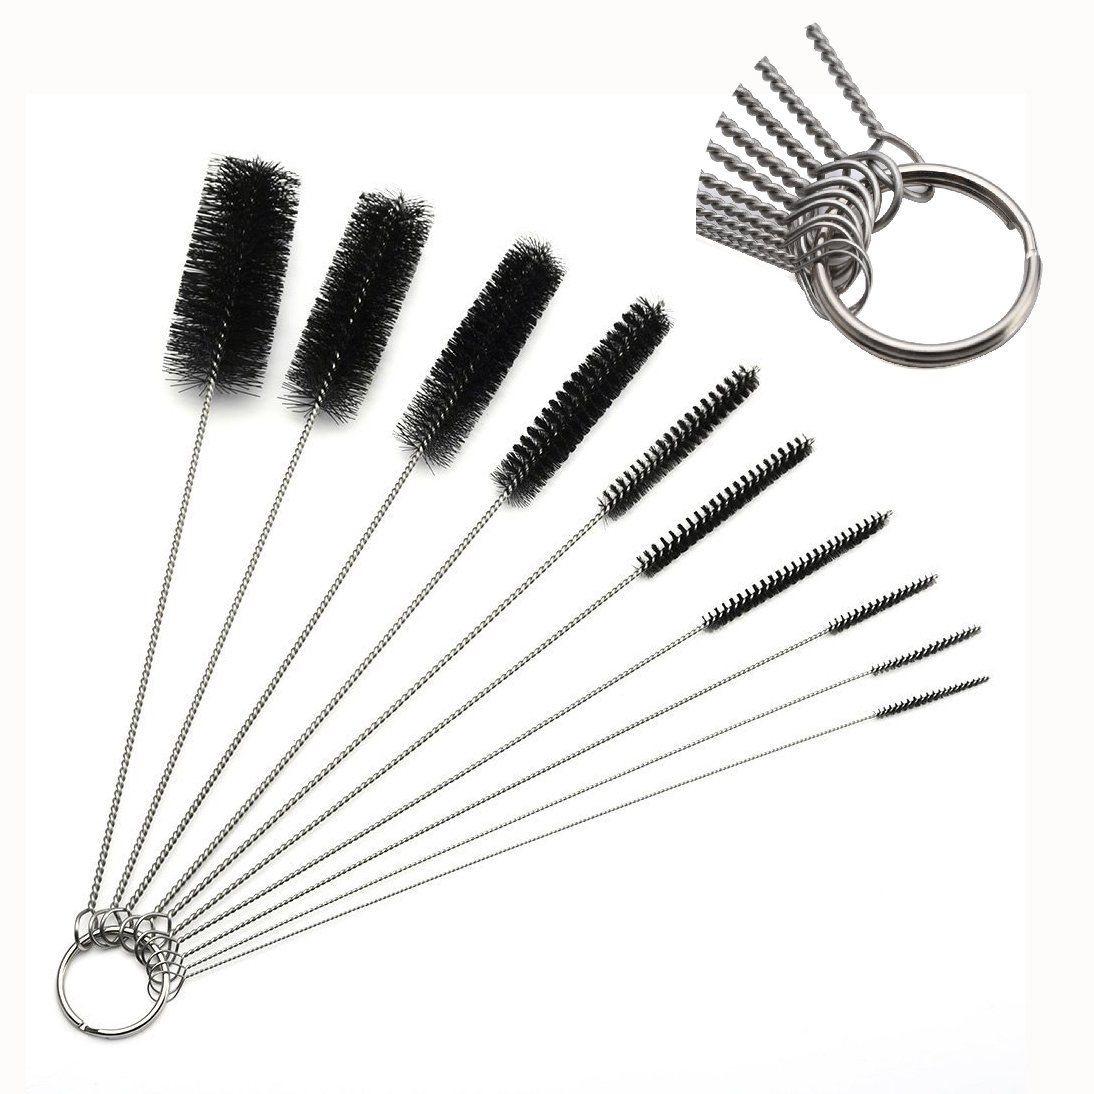 Itian 10Pcs Nylon Bottle Tube Nozzle Brushes Hanging Key Ring Needle Mouth Cleaning Tube Brush Set Kitchen Tool